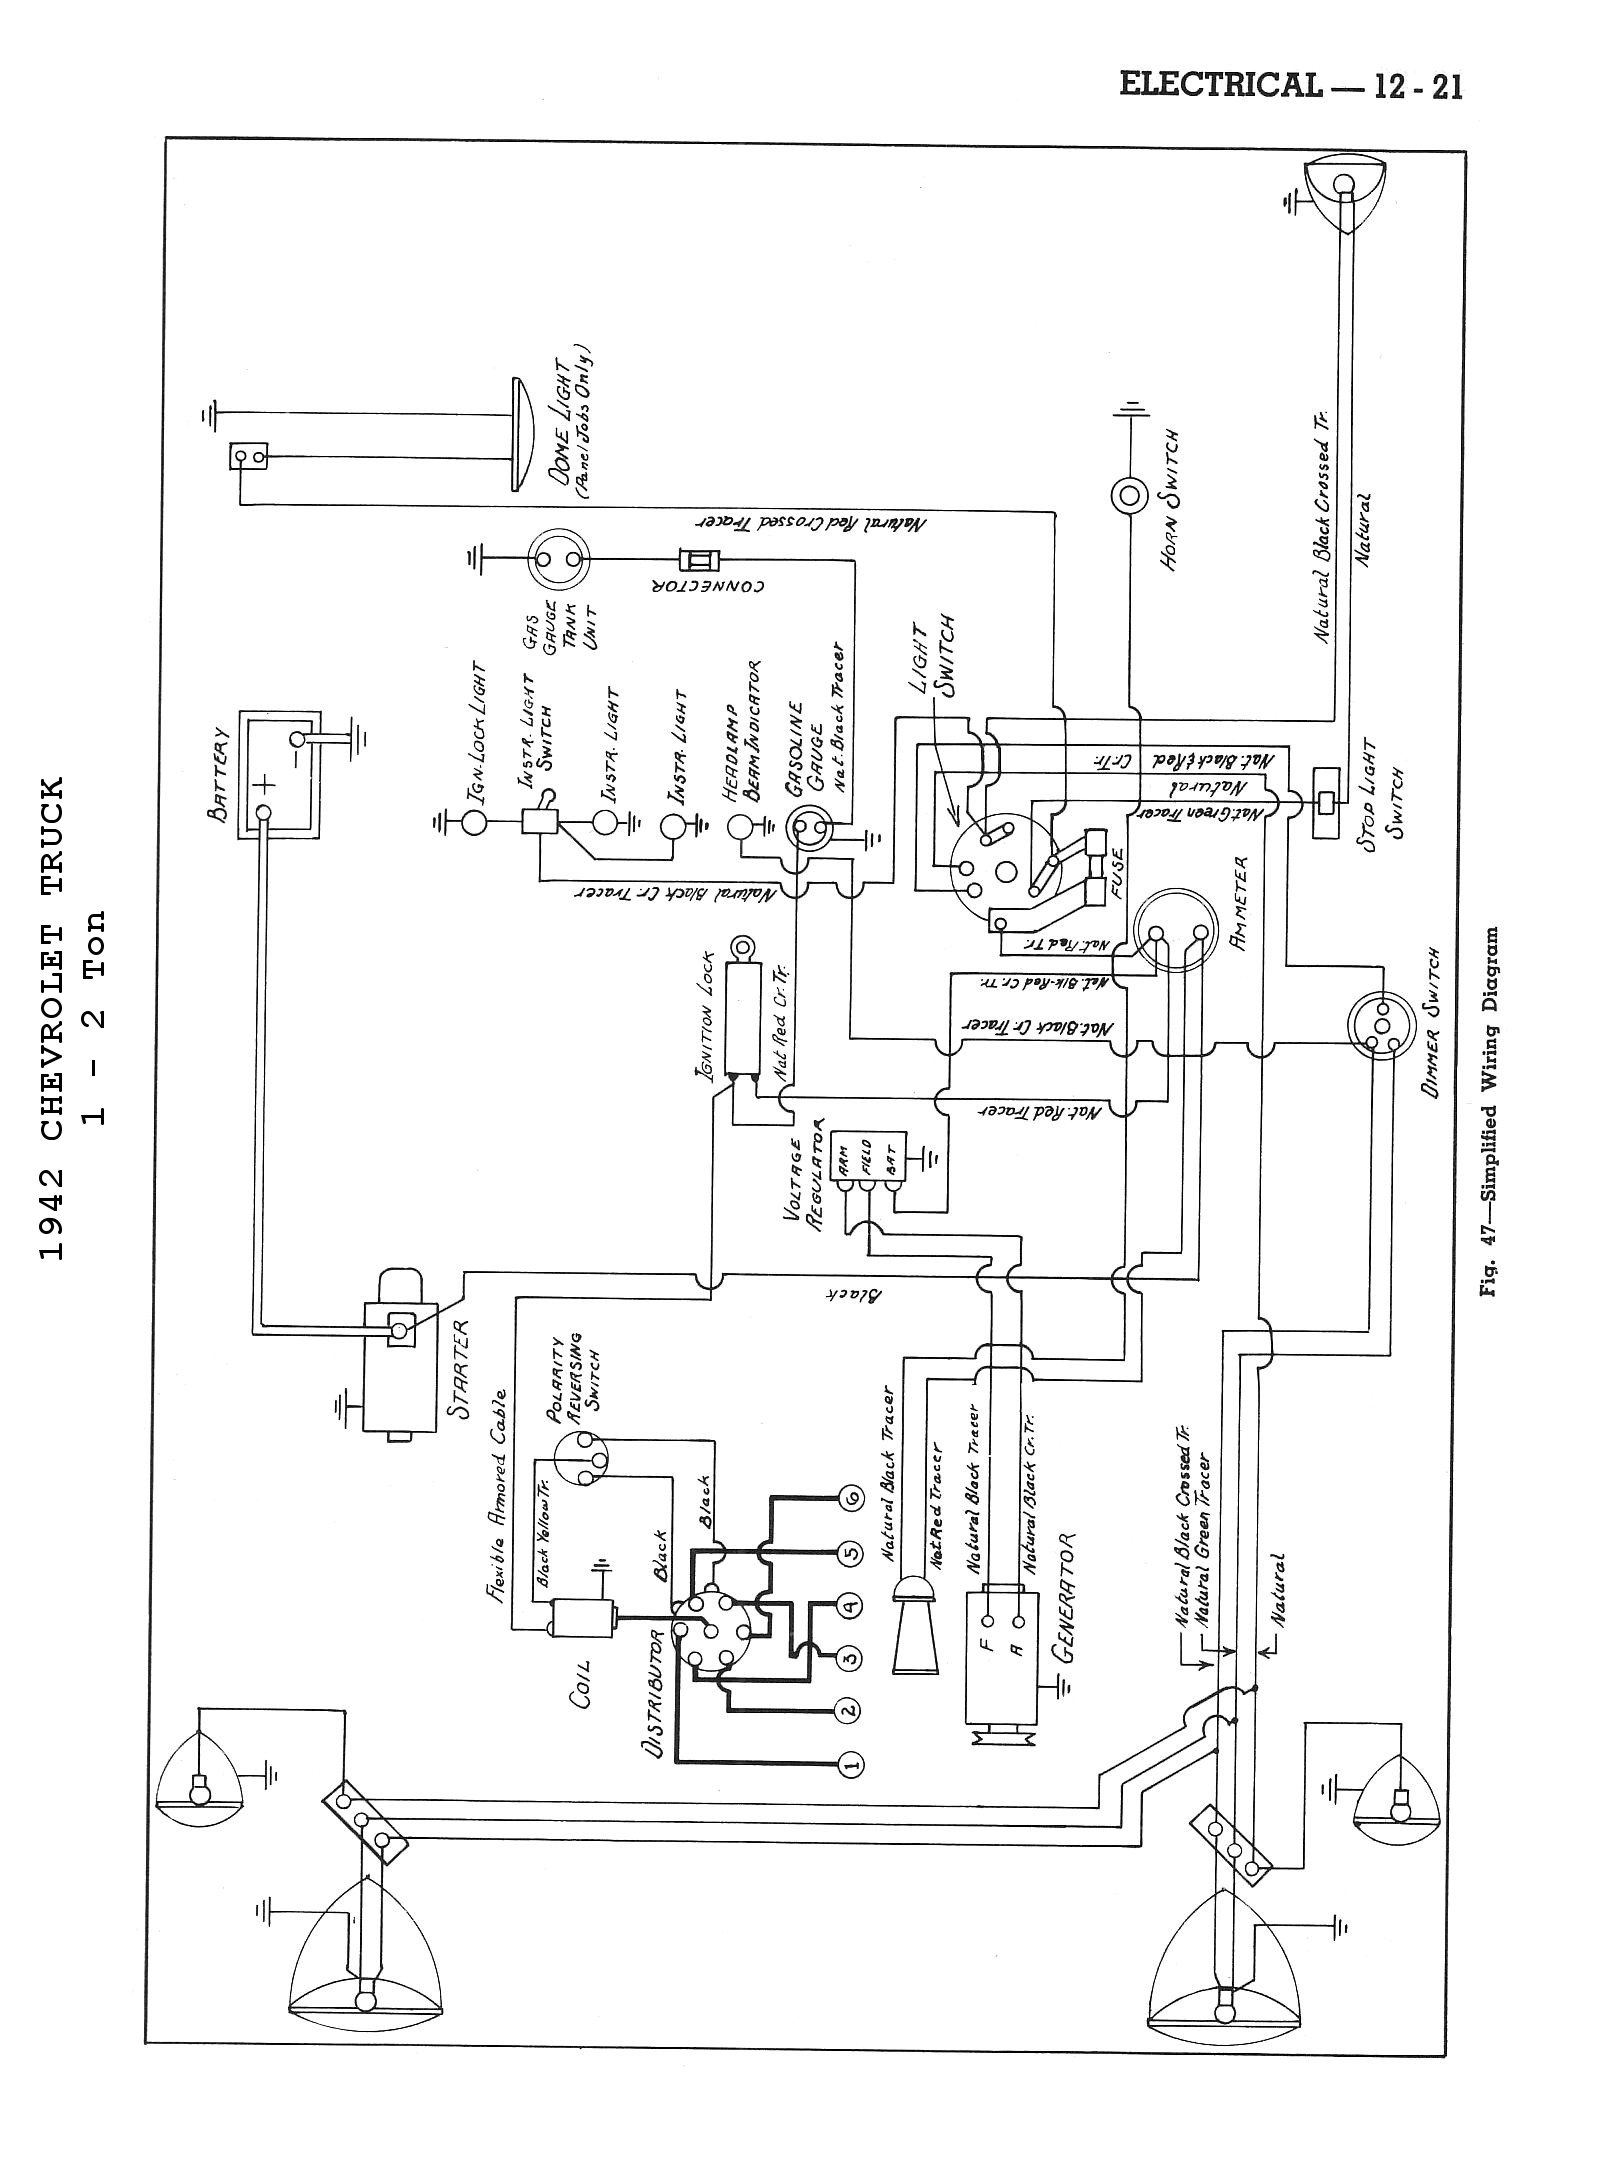 hight resolution of 1957 dodge truck wiring diagram wiring diagram data 1956 ford wiring diagram 1953 dodge wiring diagram